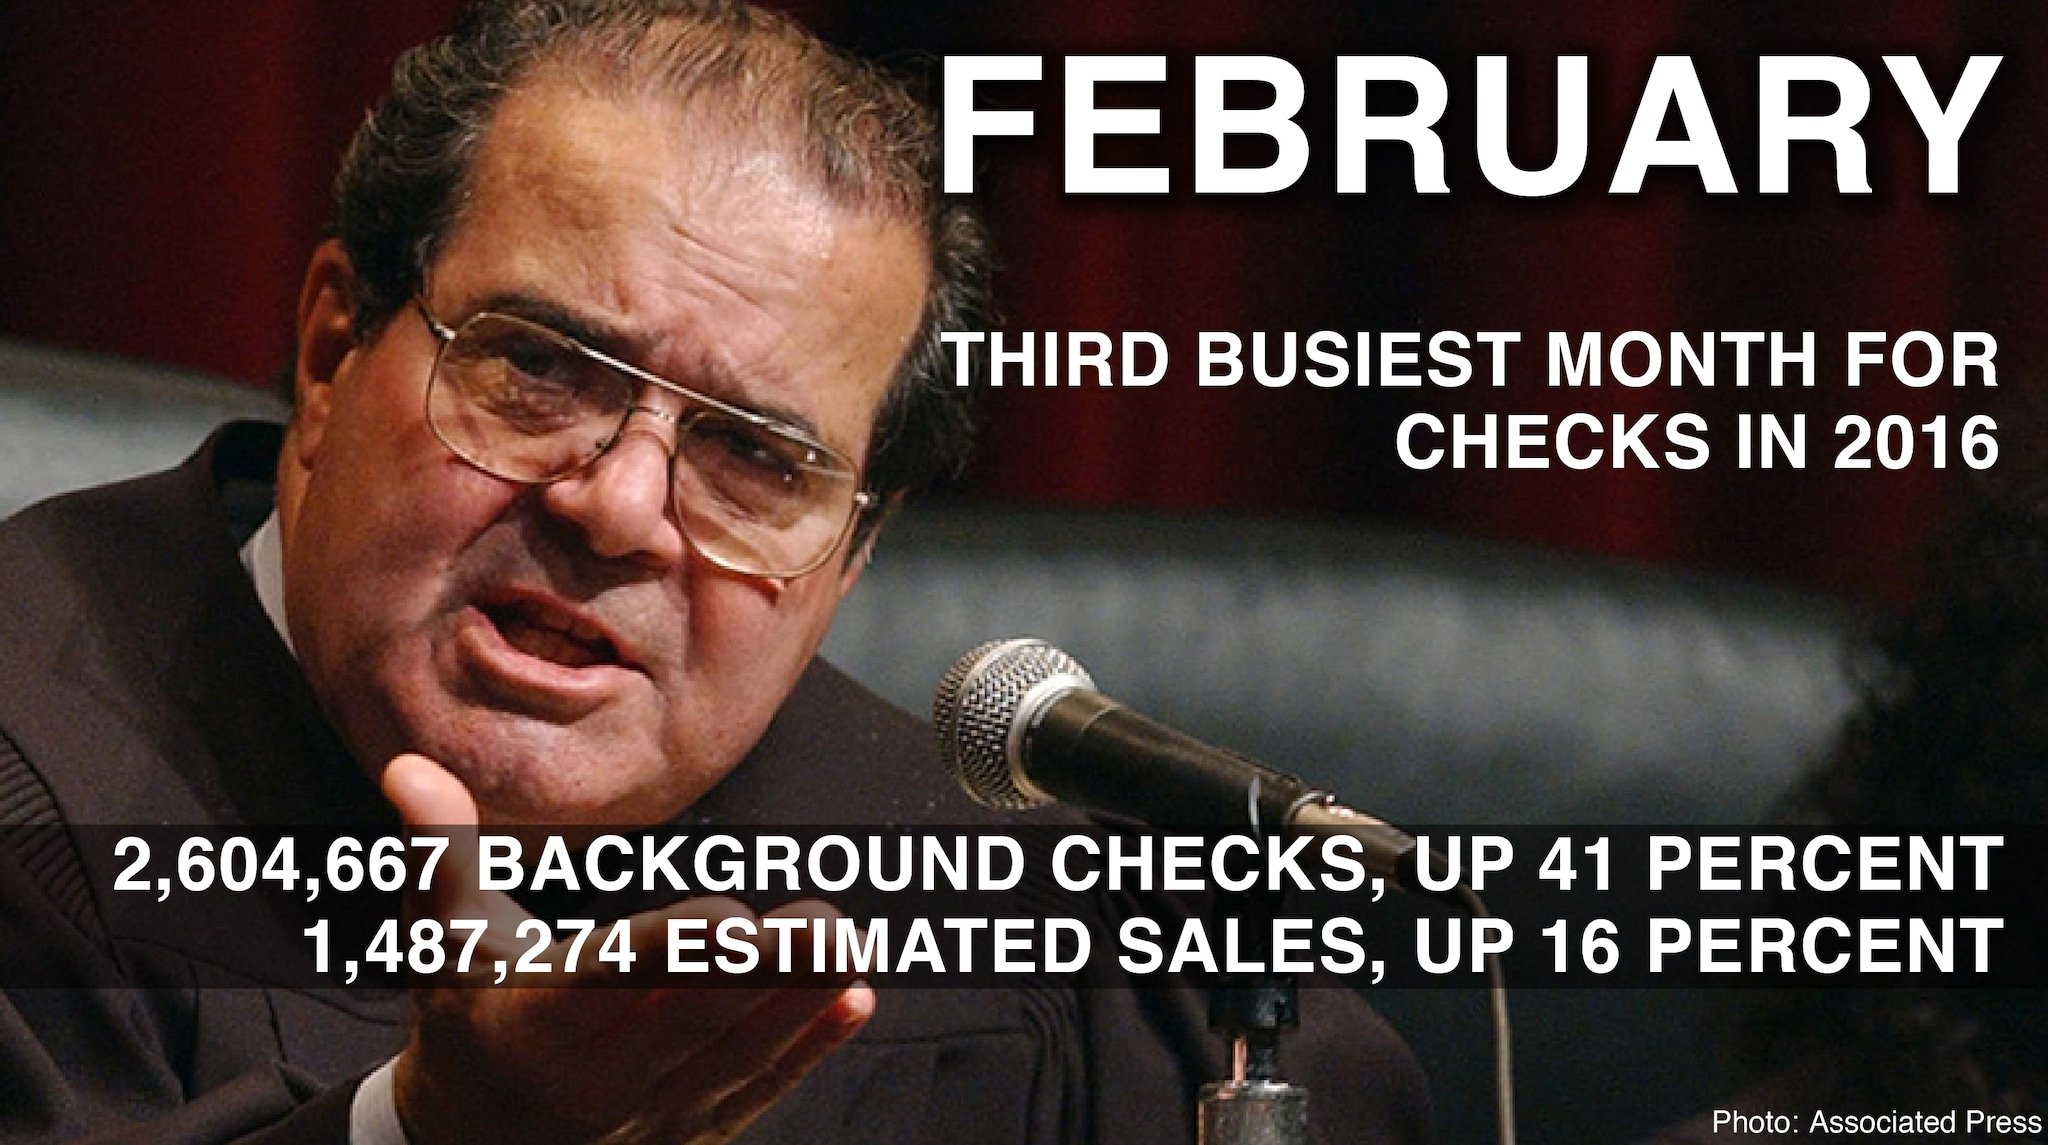 february 2016 background check stats